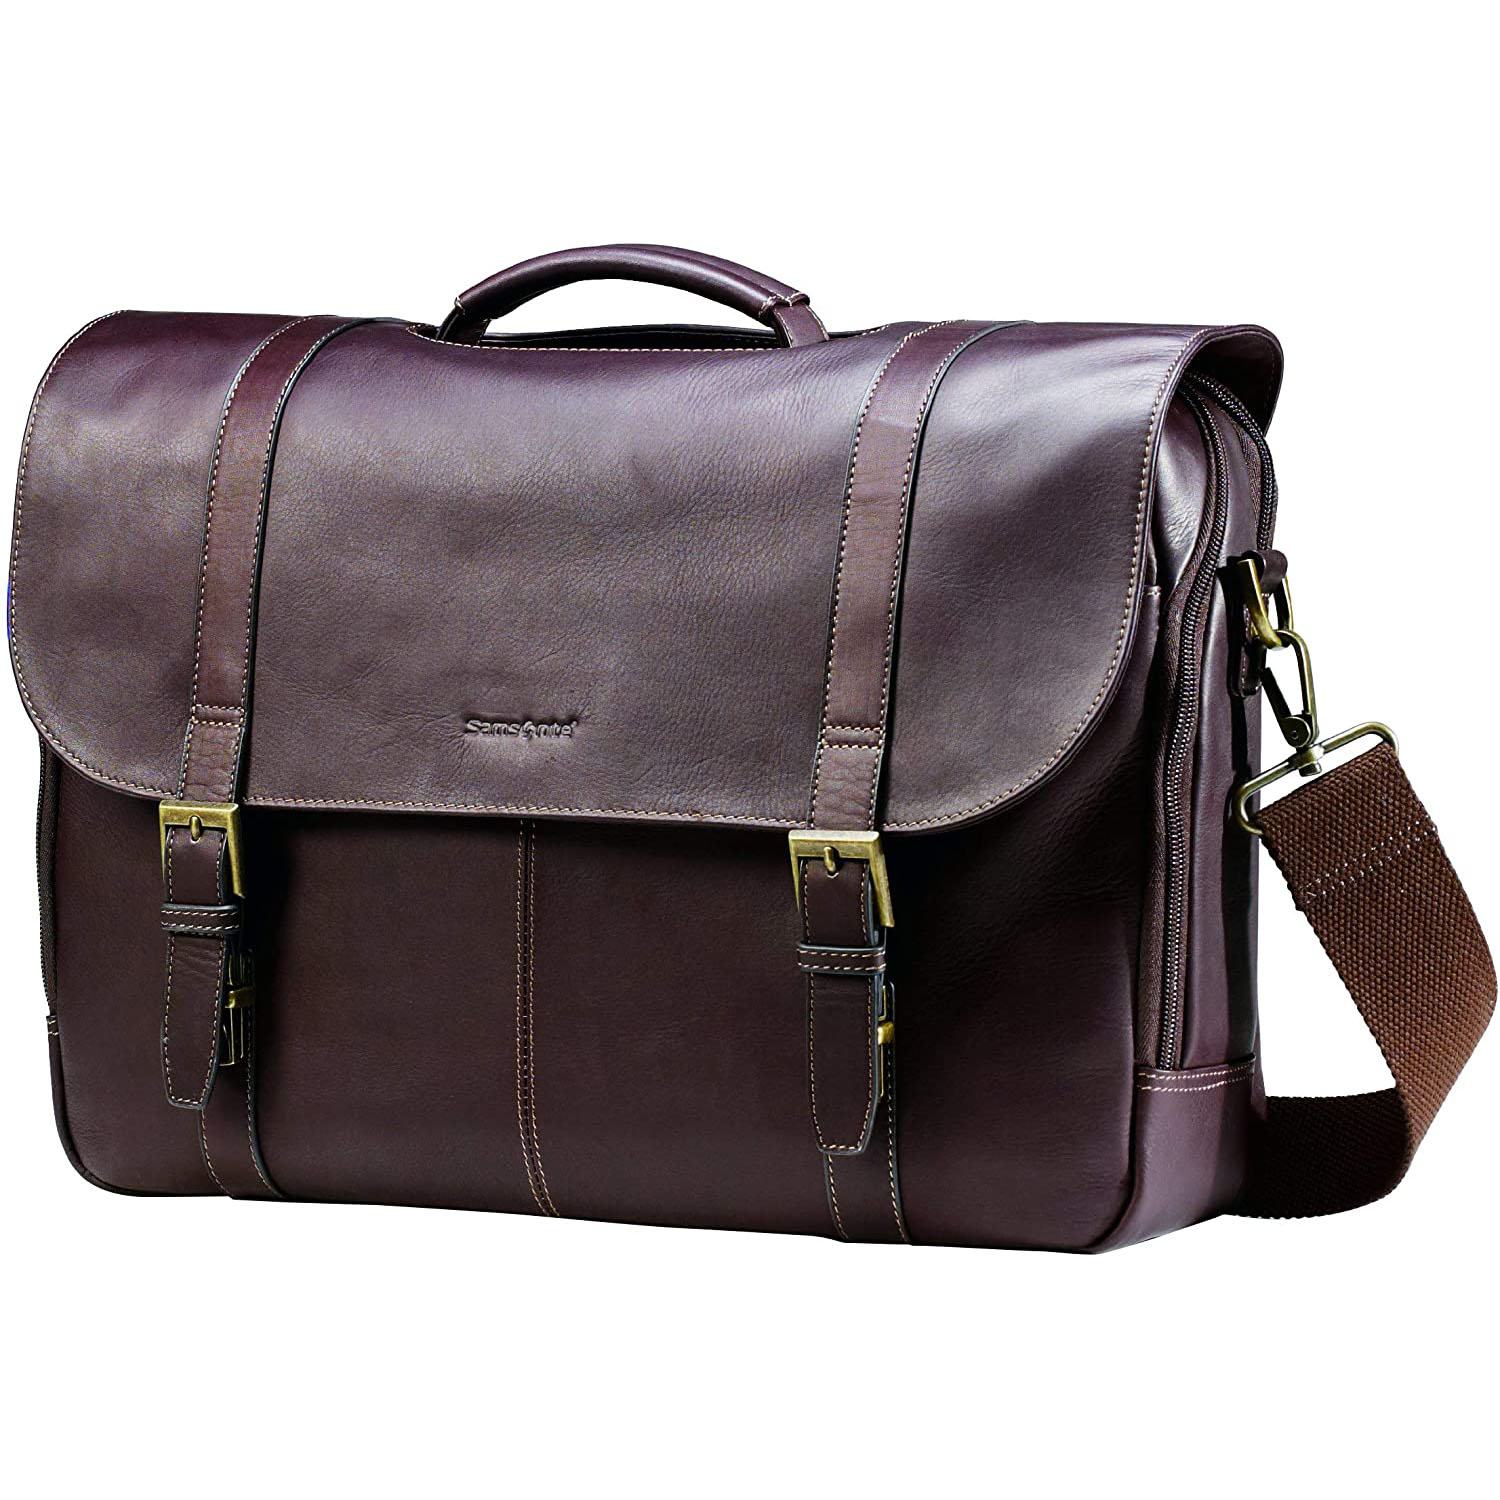 Samsonite Colombian Leather Briefcase